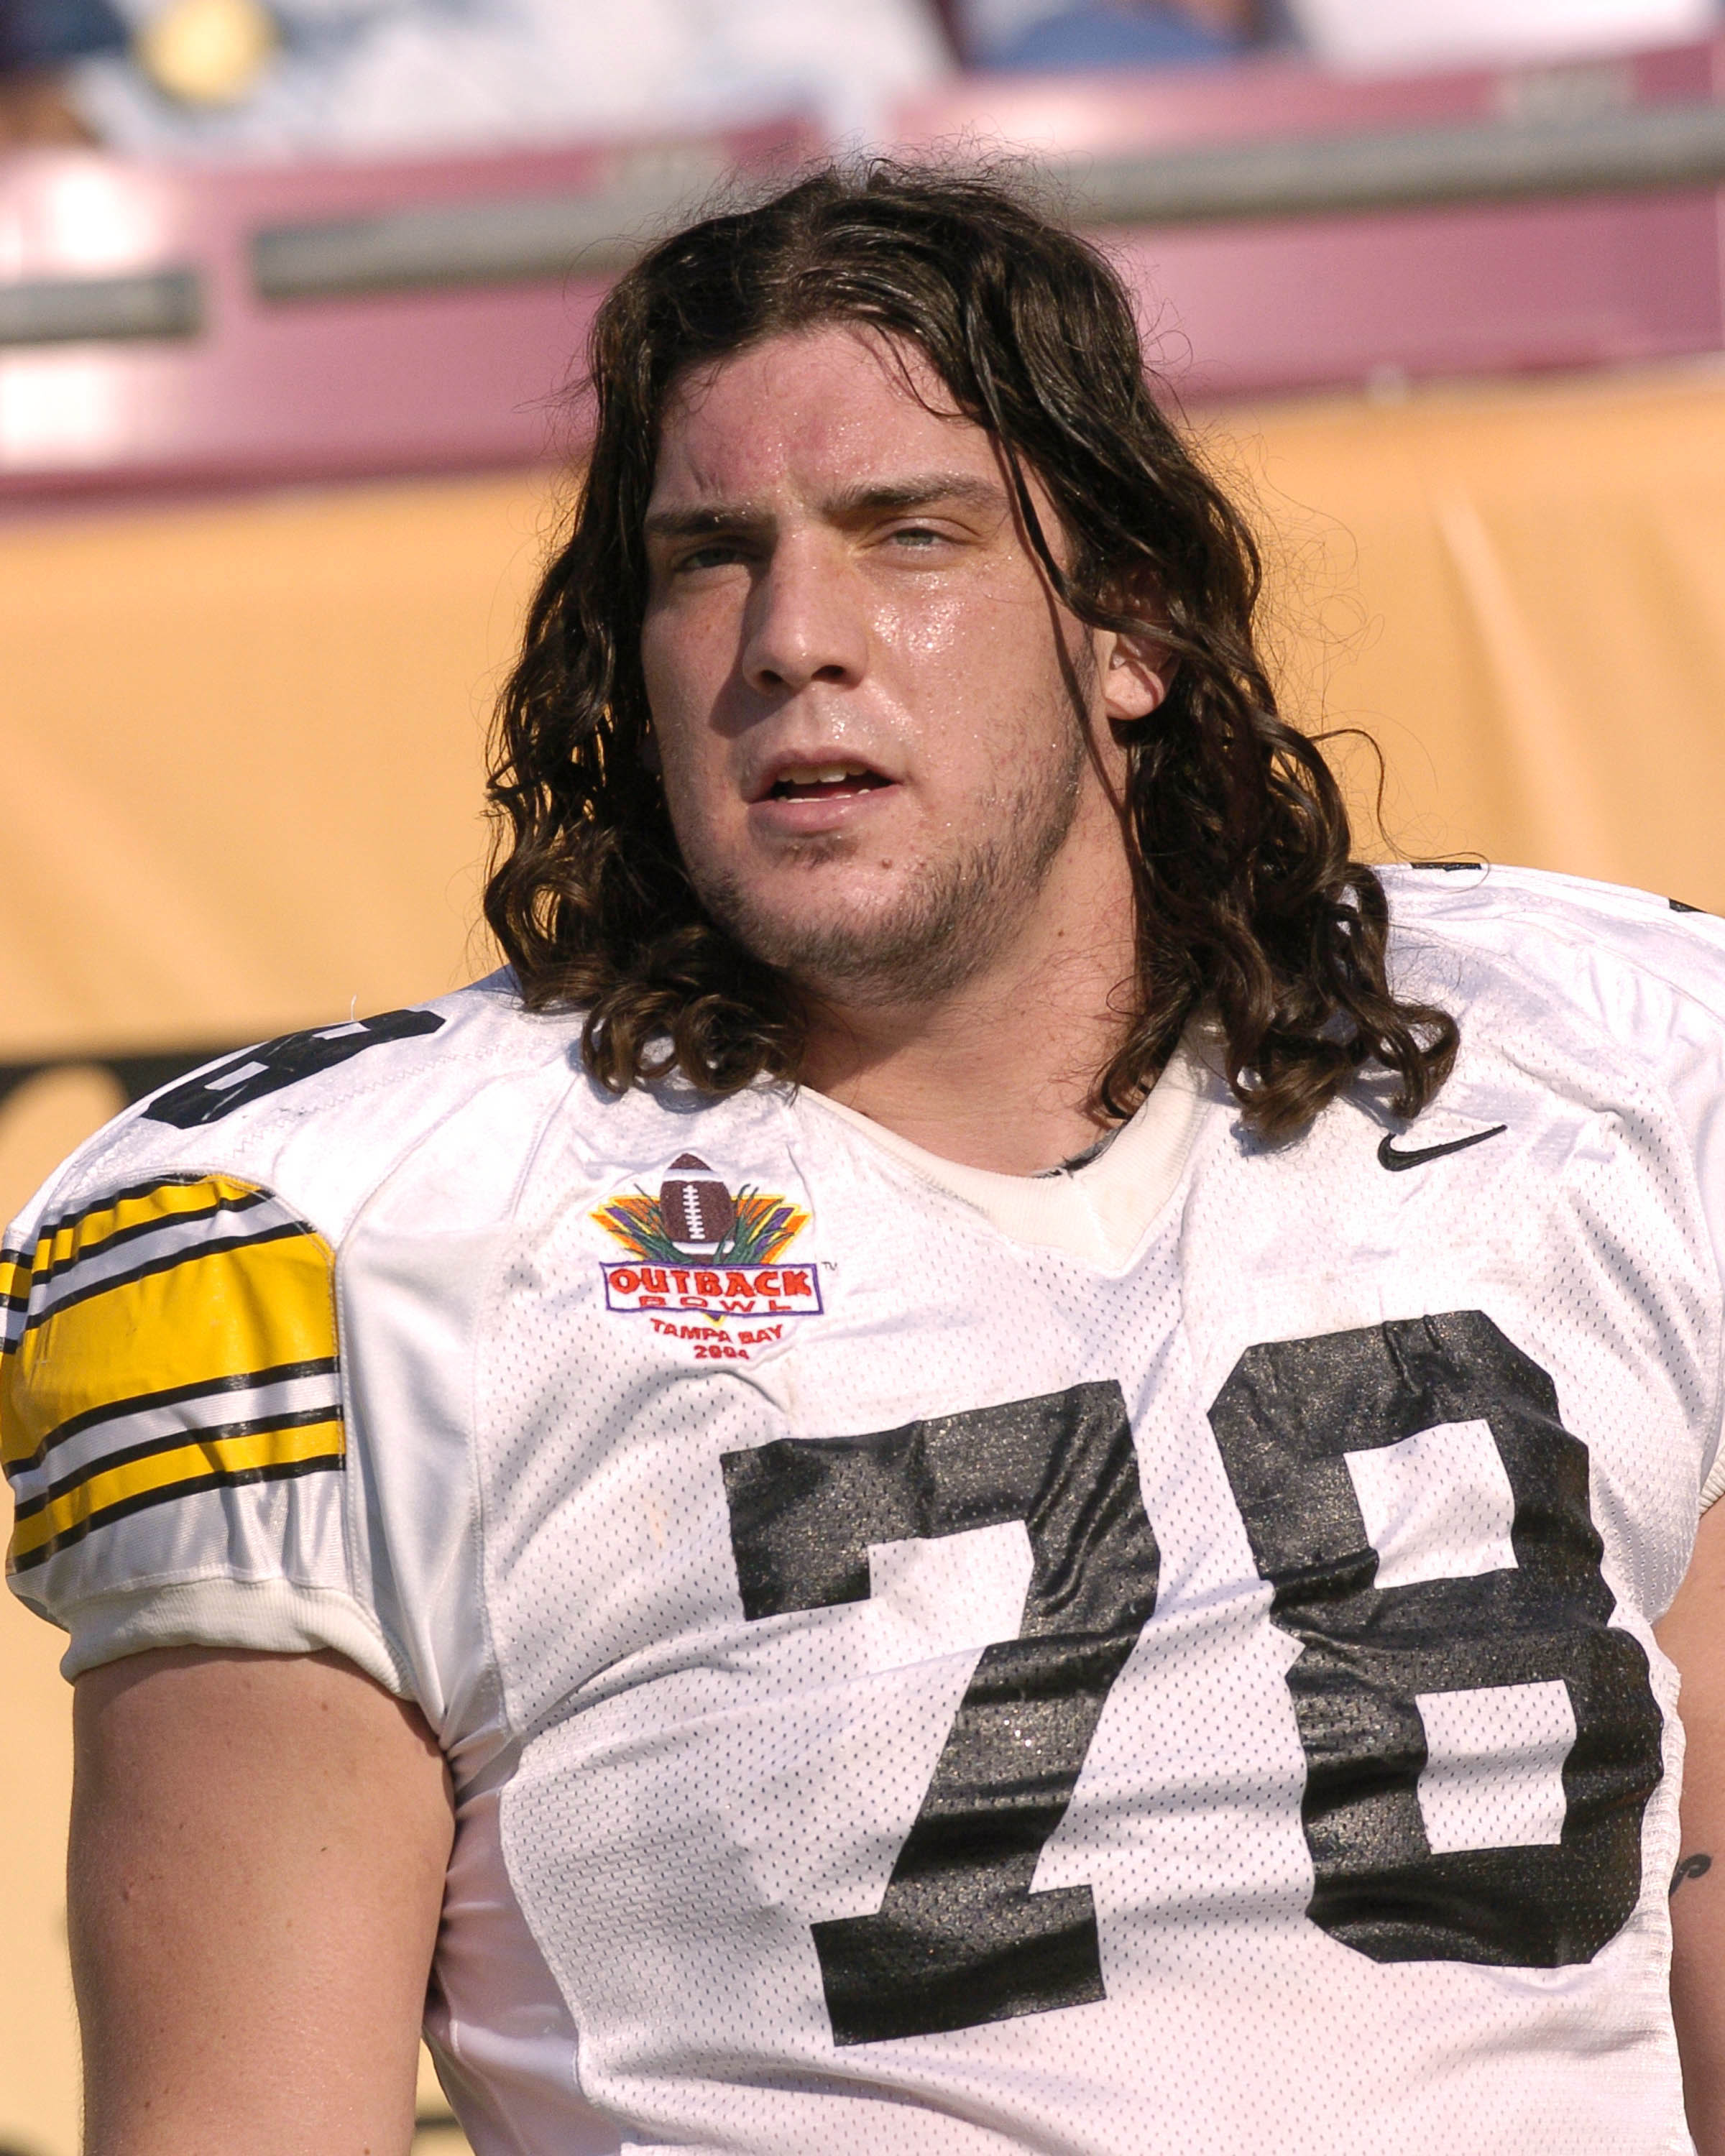 Iowa offensive lineman Robert 'The Mountain' Gallery sets for play (Photo by A. Messerschmidt/Getty Images)